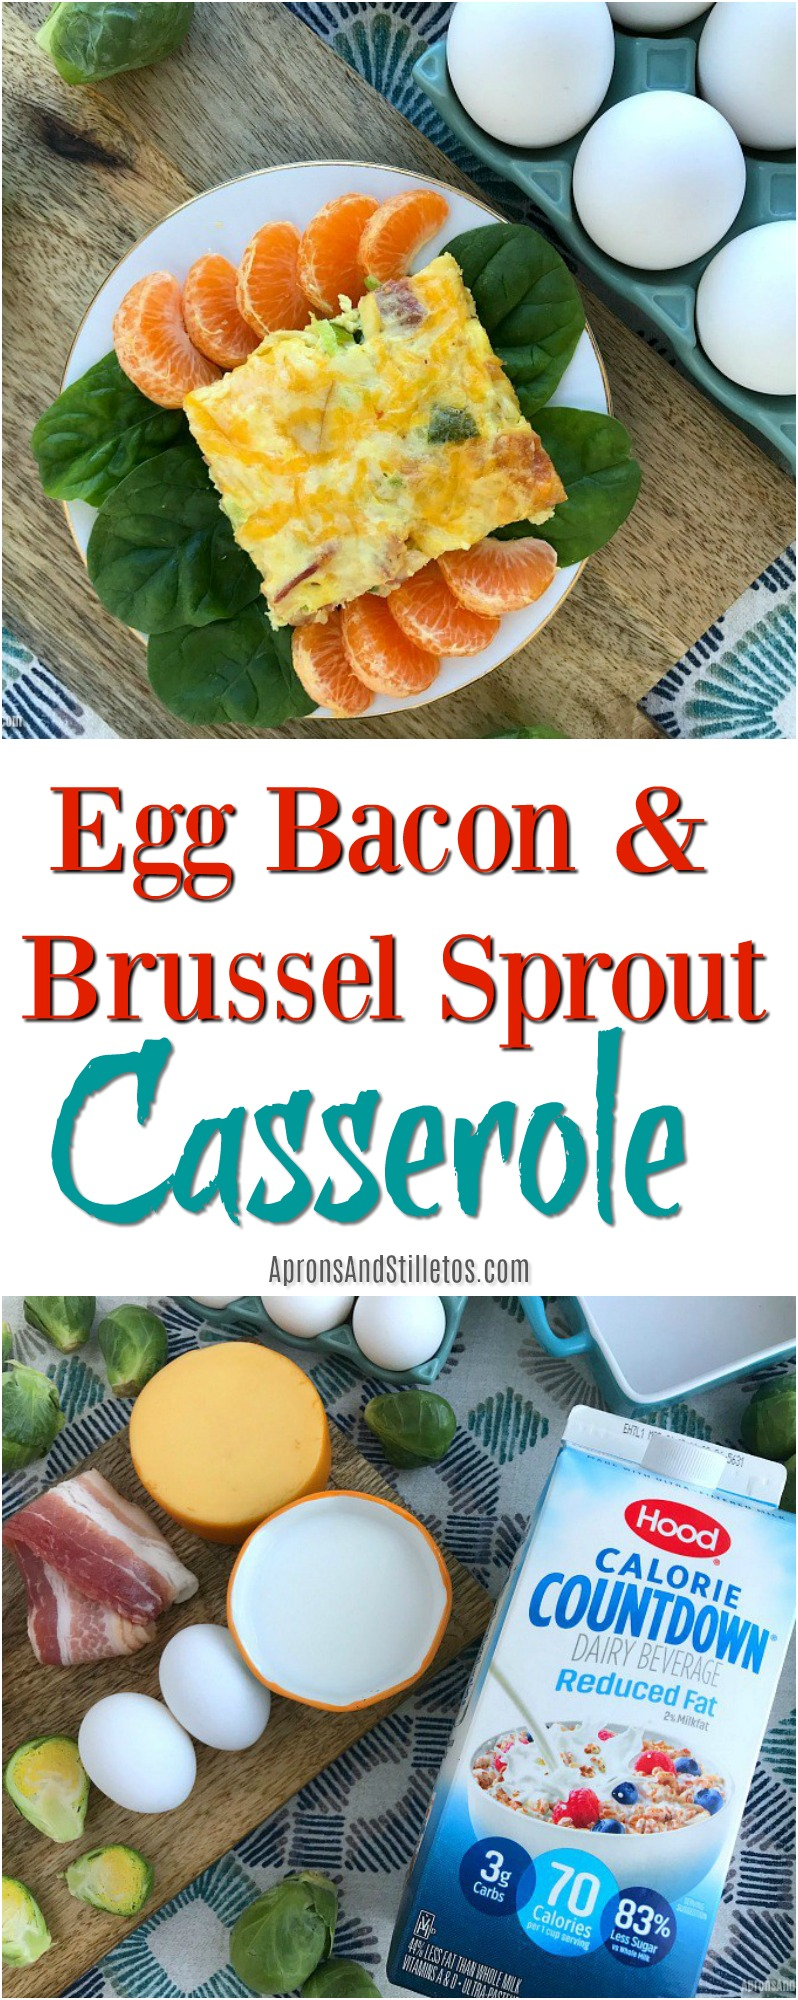 Egg Bacon and Brussel Sprout Casserole